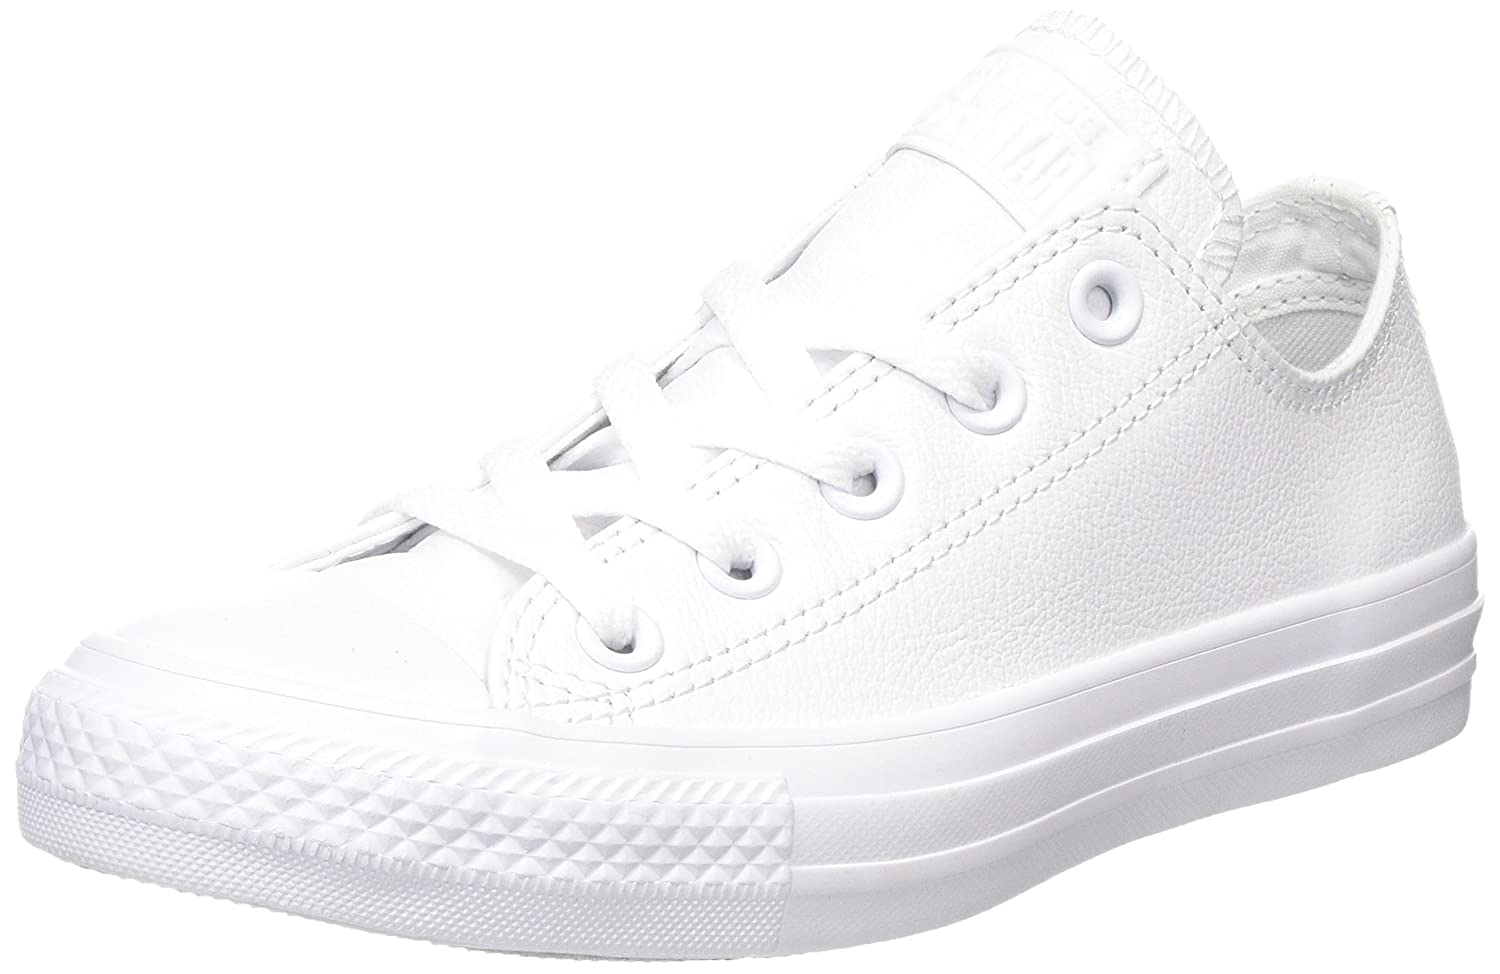 Converse Men's Chuck Taylor All Star Seasonal Ox B00SZGUEA2 3.5 US Men / 5.5 US Women|White Leather